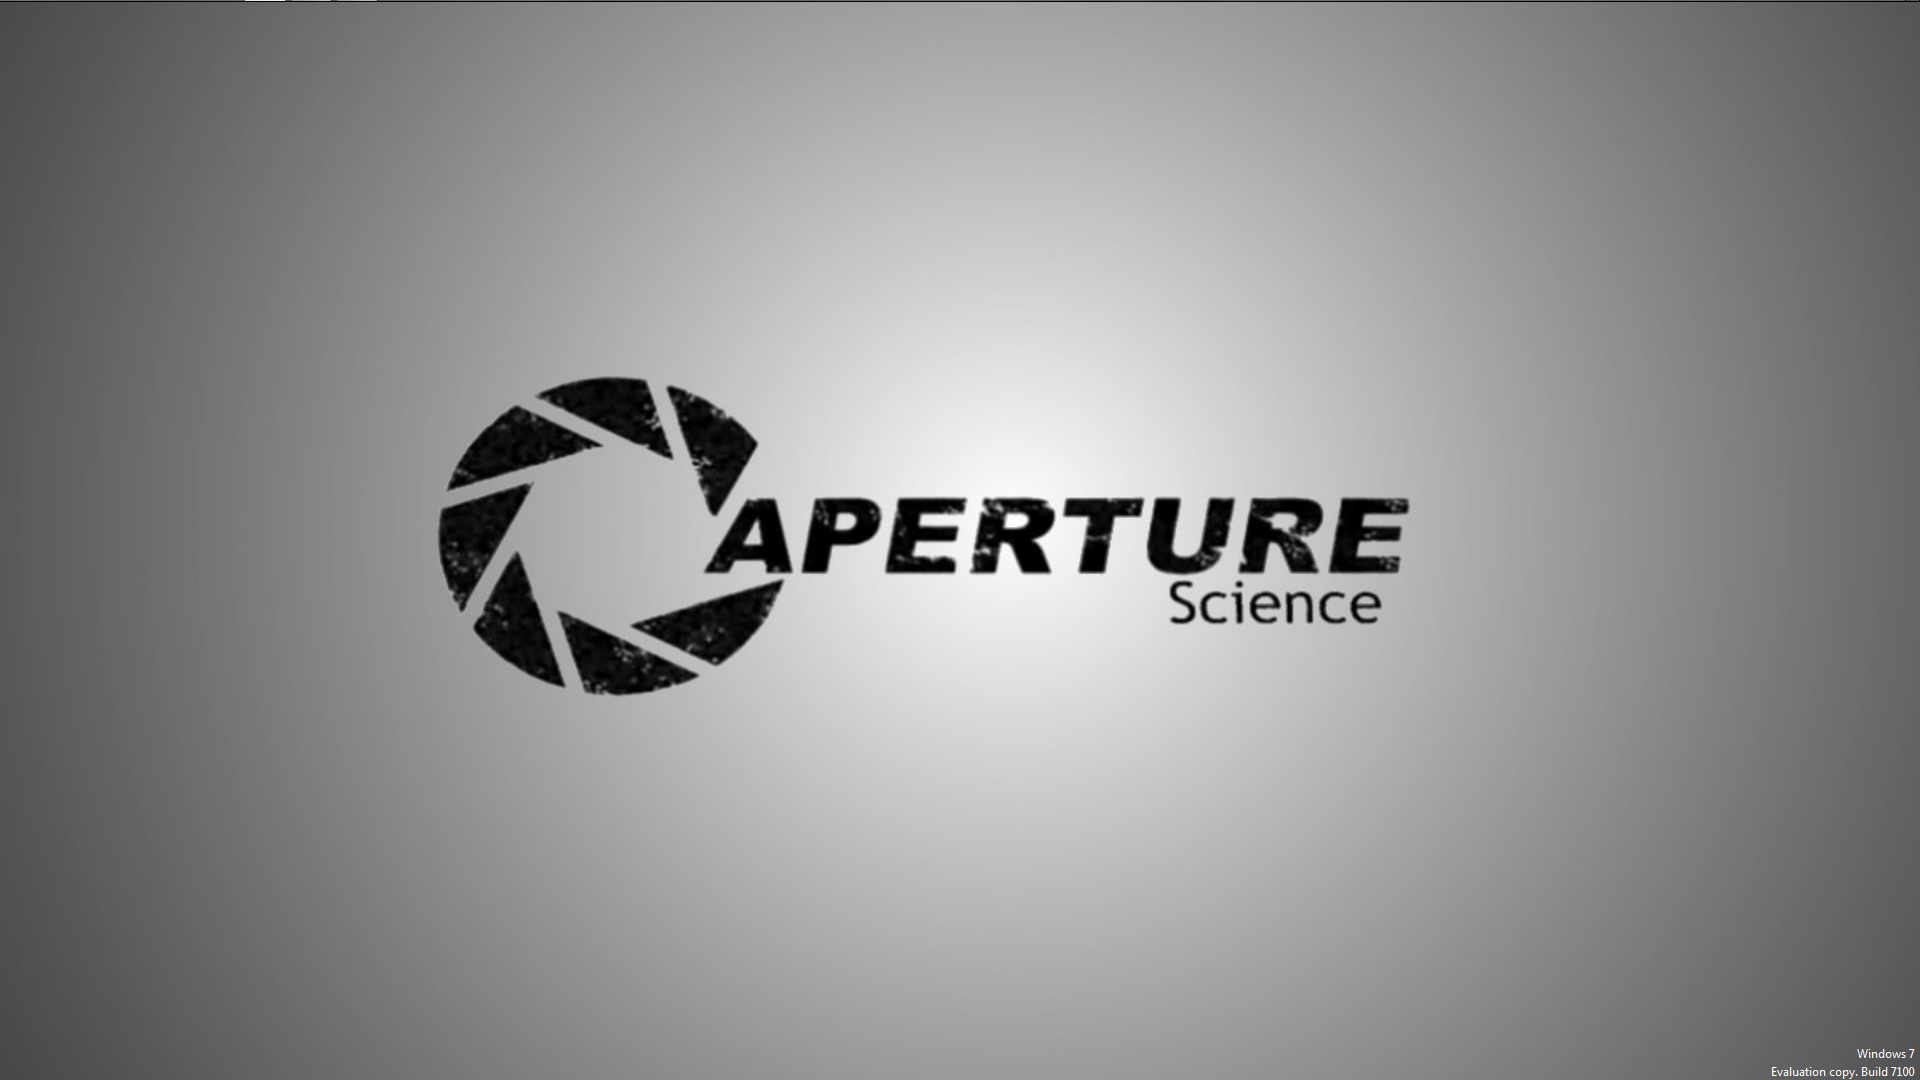 [37+] Aperture Laboratories Wallpaper HD on WallpaperSafari